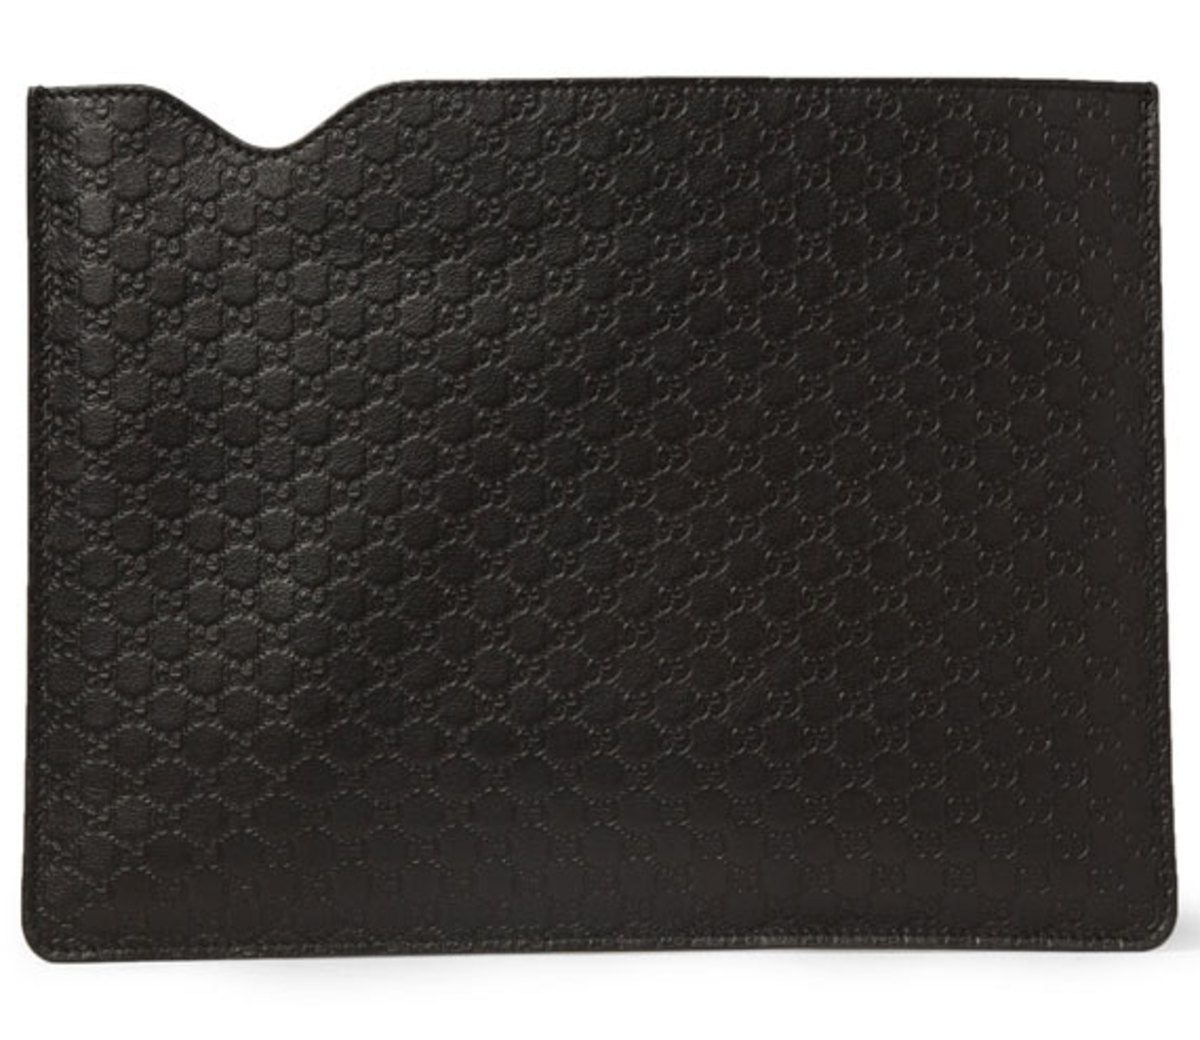 038beeba0a9 Gucci - Micro Guccissima Leather Case for Apple iPad - Freshness Mag